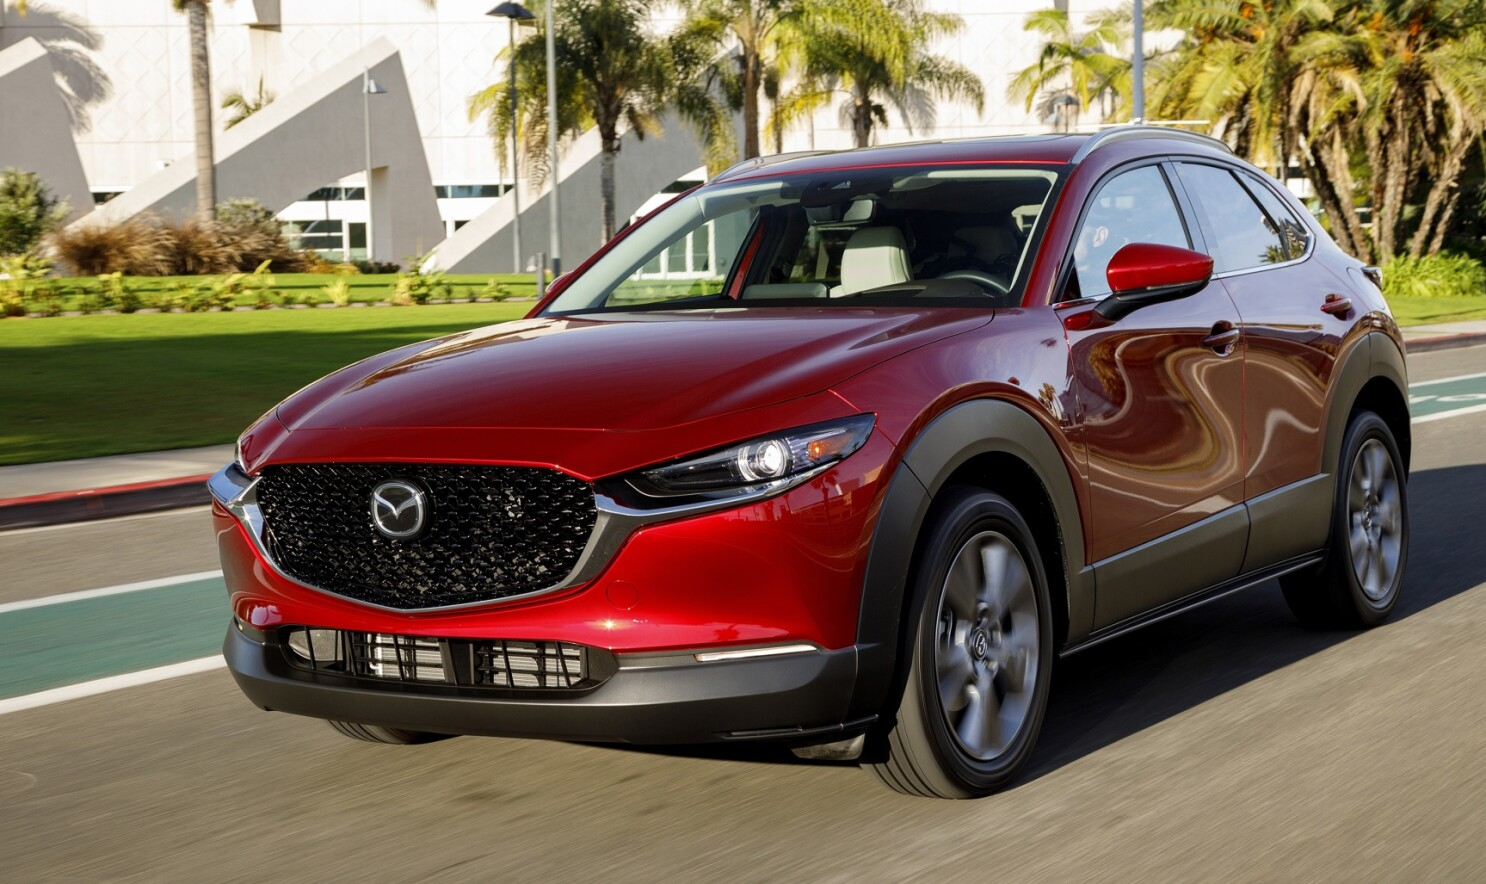 2020 Mazda CX-30: elevated subcompact experience - The San Diego Union-Tribune